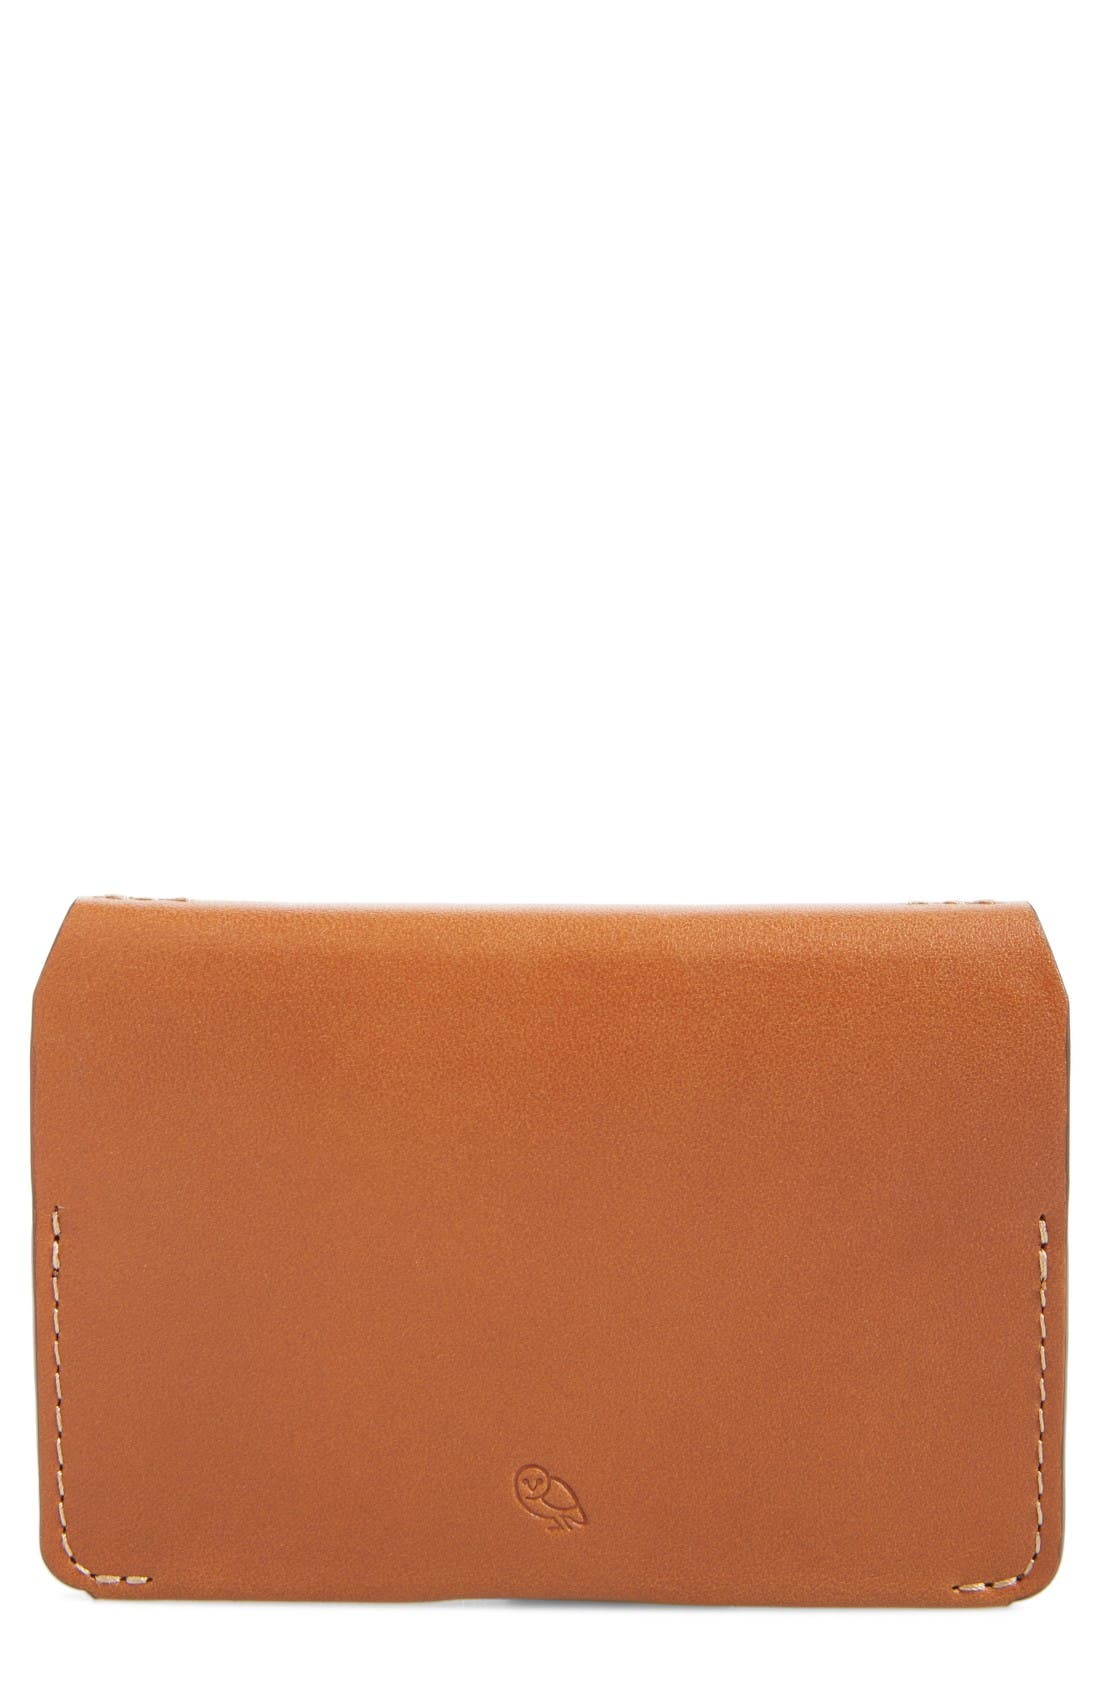 Main Image - Bellroy Leather Card Case